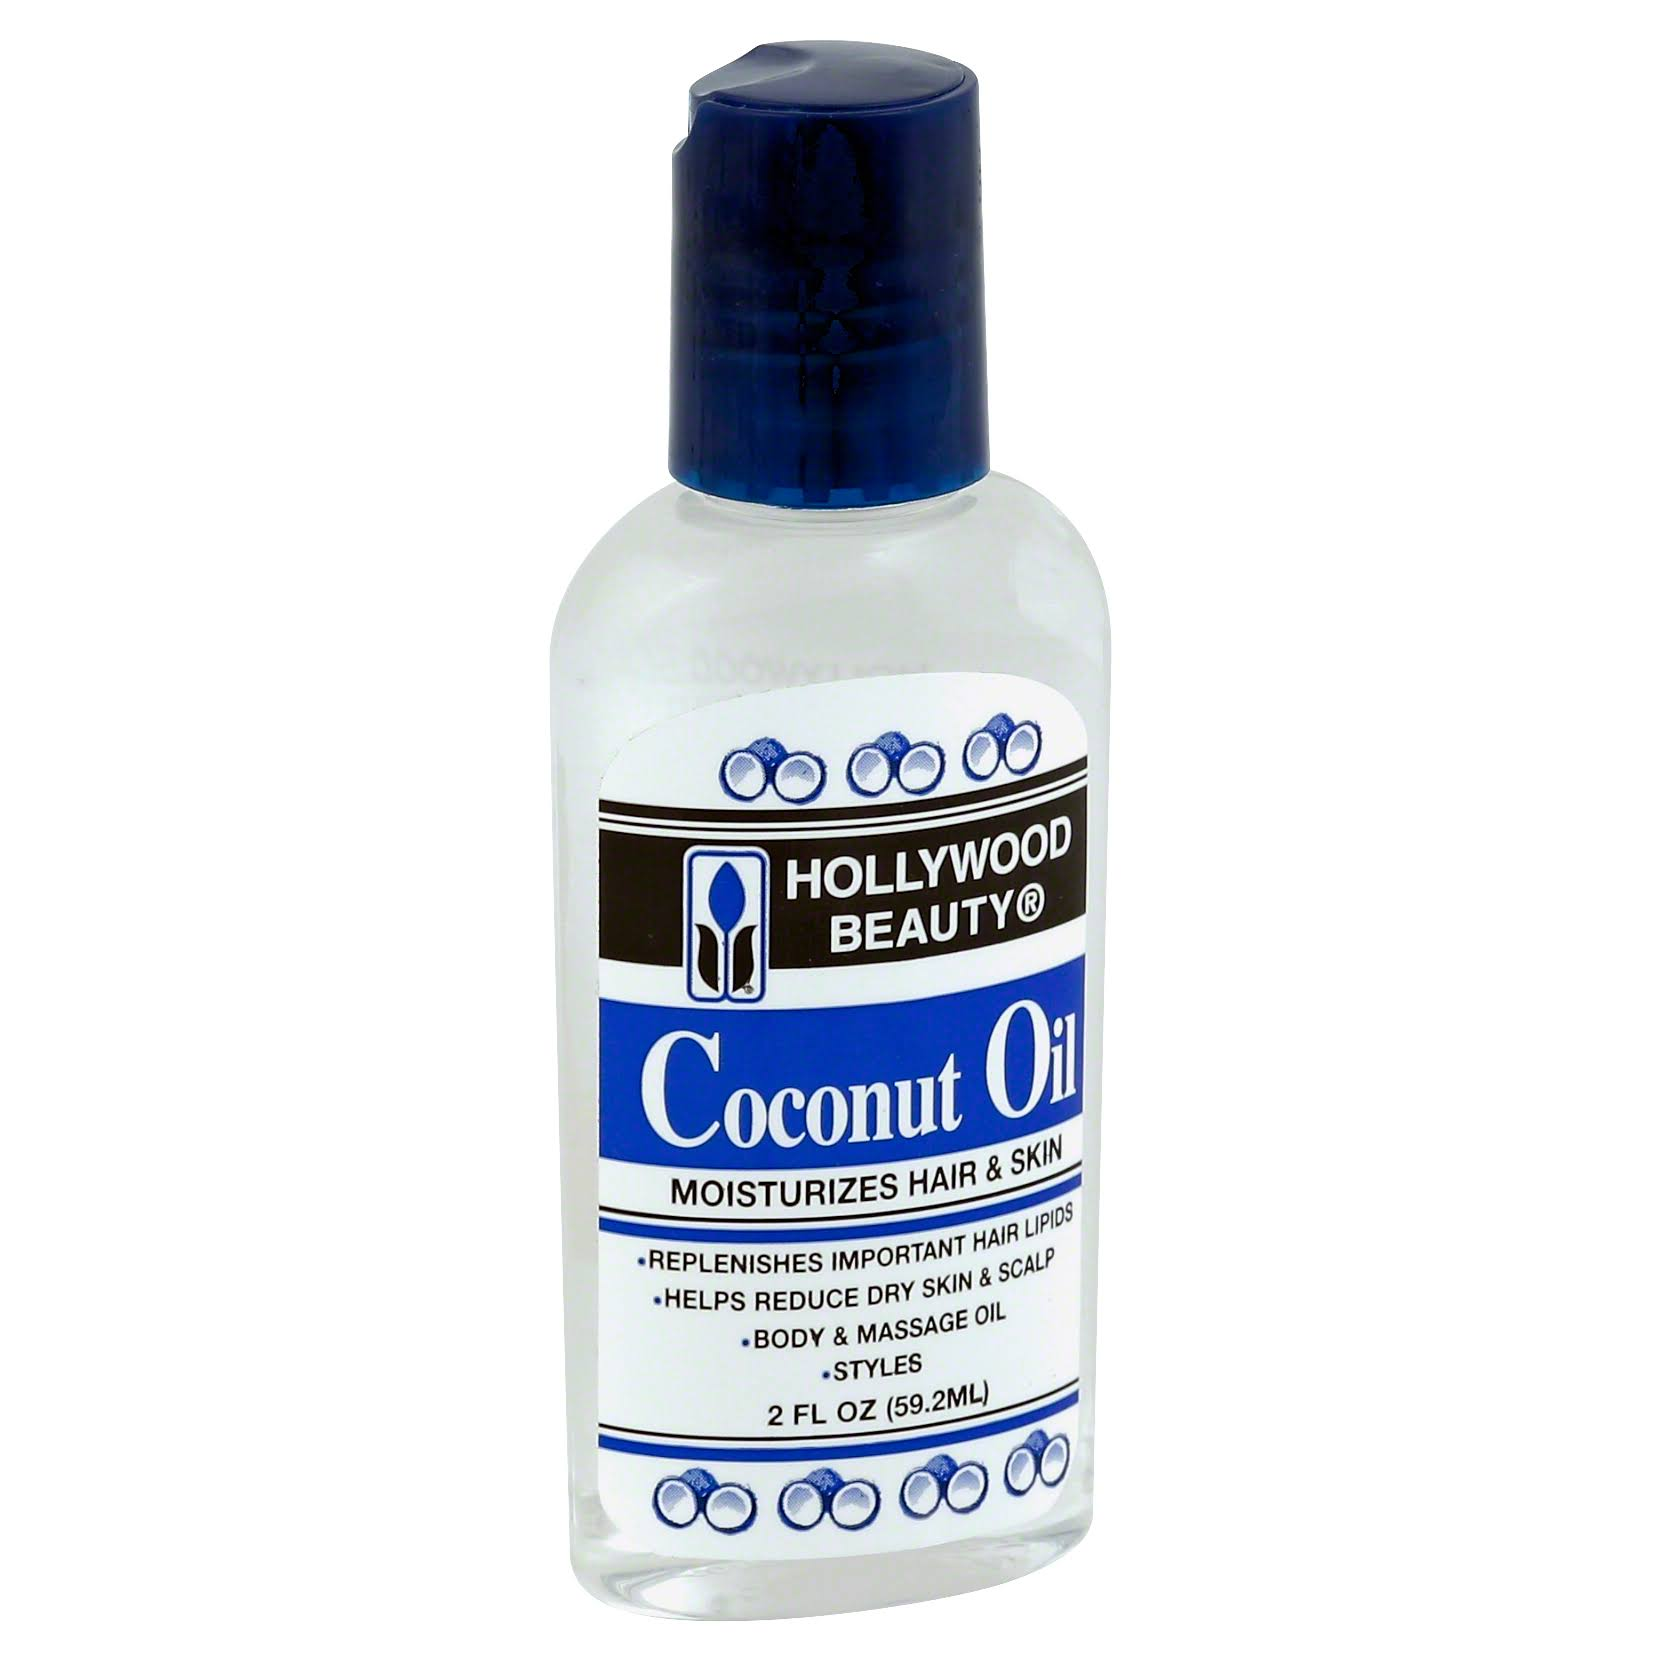 Hollywood Beauty Coconut Oil Moisturizer - 2oz